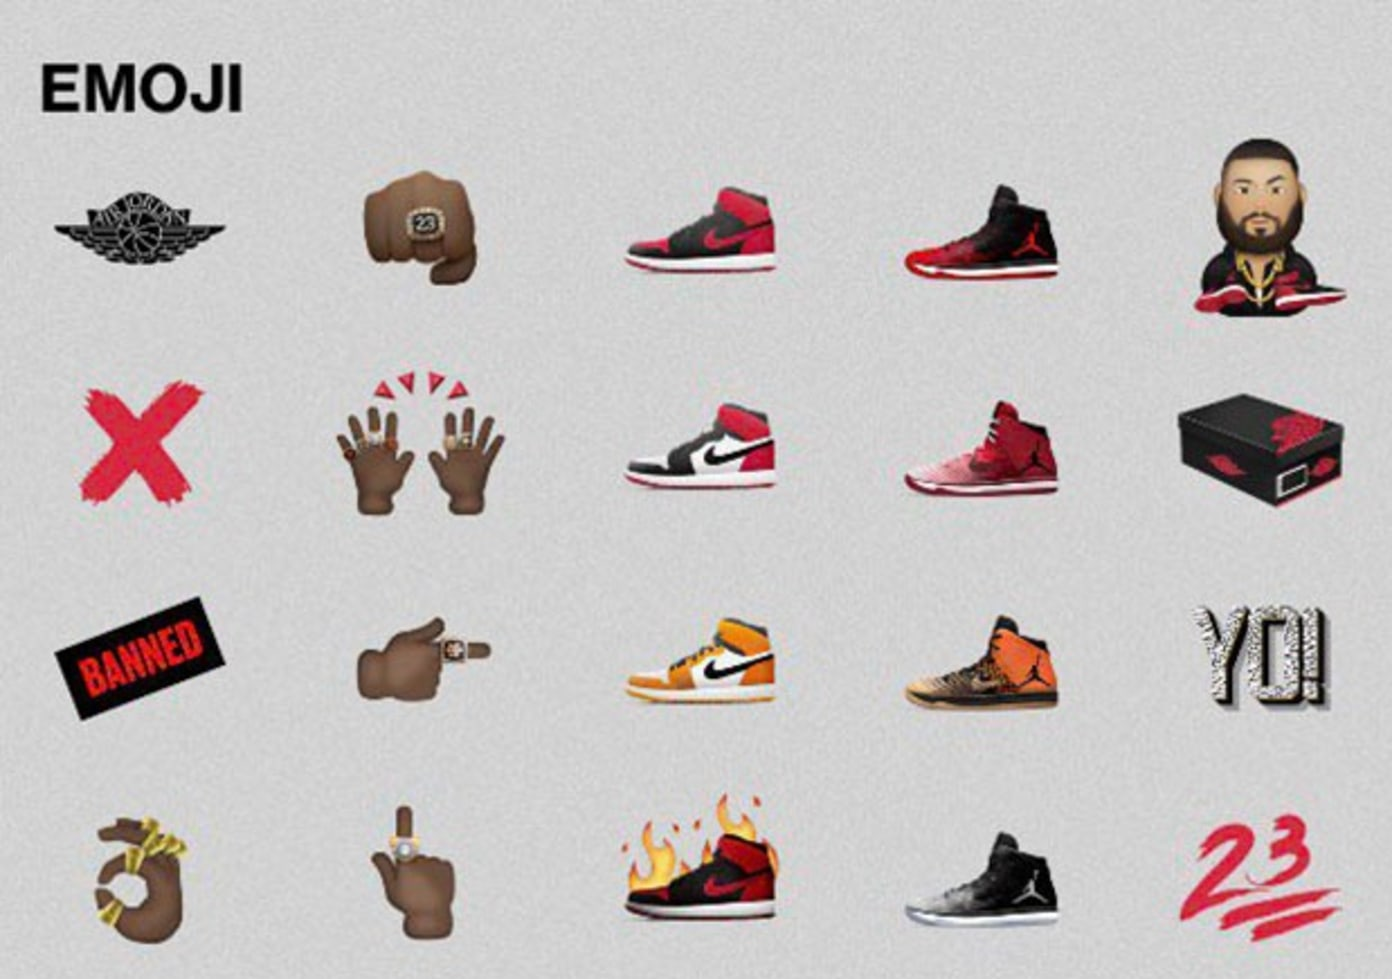 Jordan set to release Emoji collection